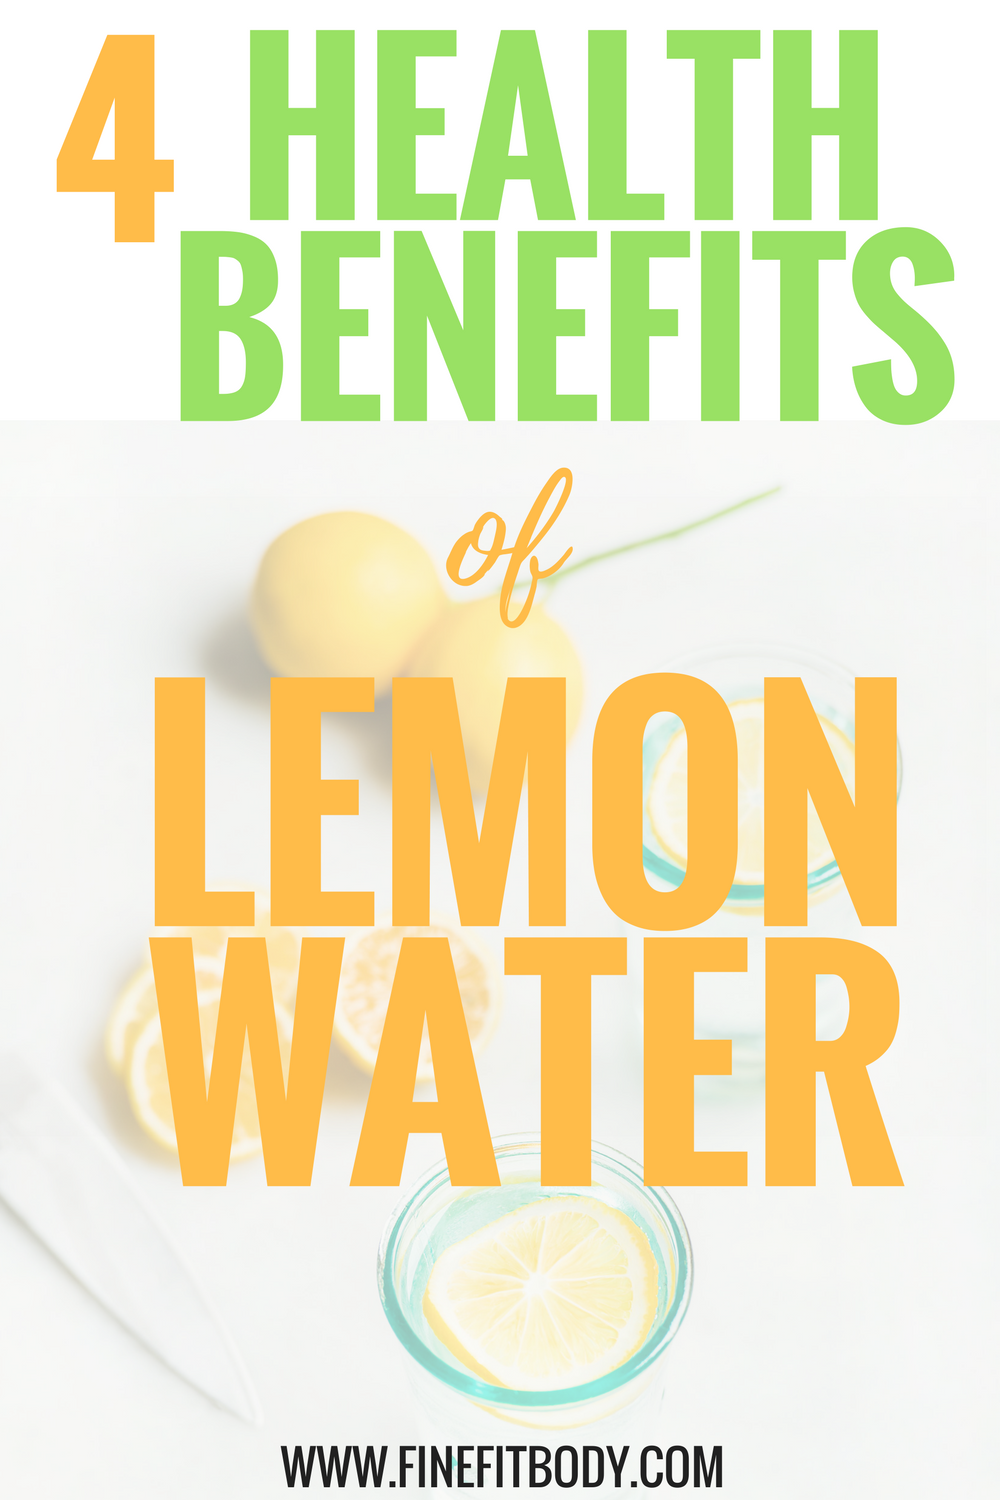 I didn't know that lemon water had so many health benefits, especially when you drink lemon water in the morning! Lemon water helps improve weight loss, I'm definitely starting to drink lemon water tomorrow!